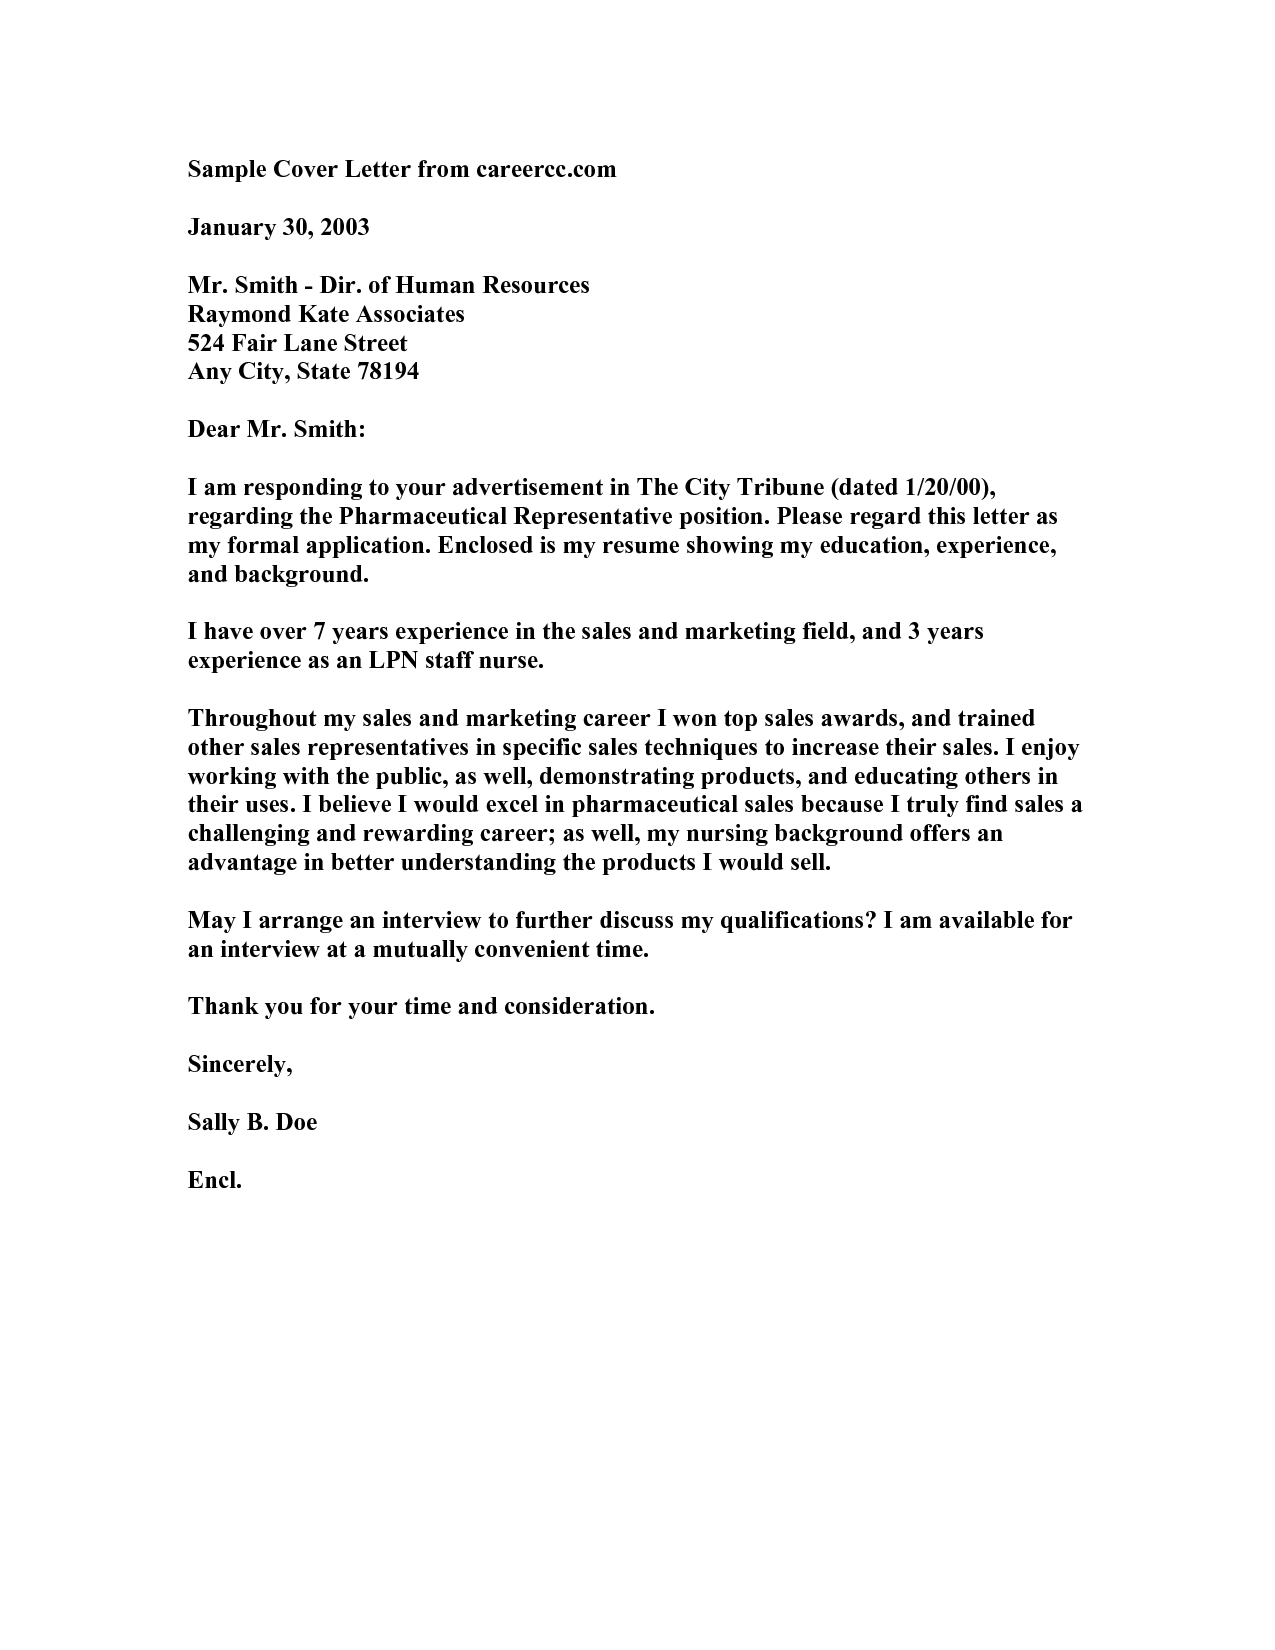 New grad nurse cover letter example lpn cover letter for Dental hygiene cover letter new grad